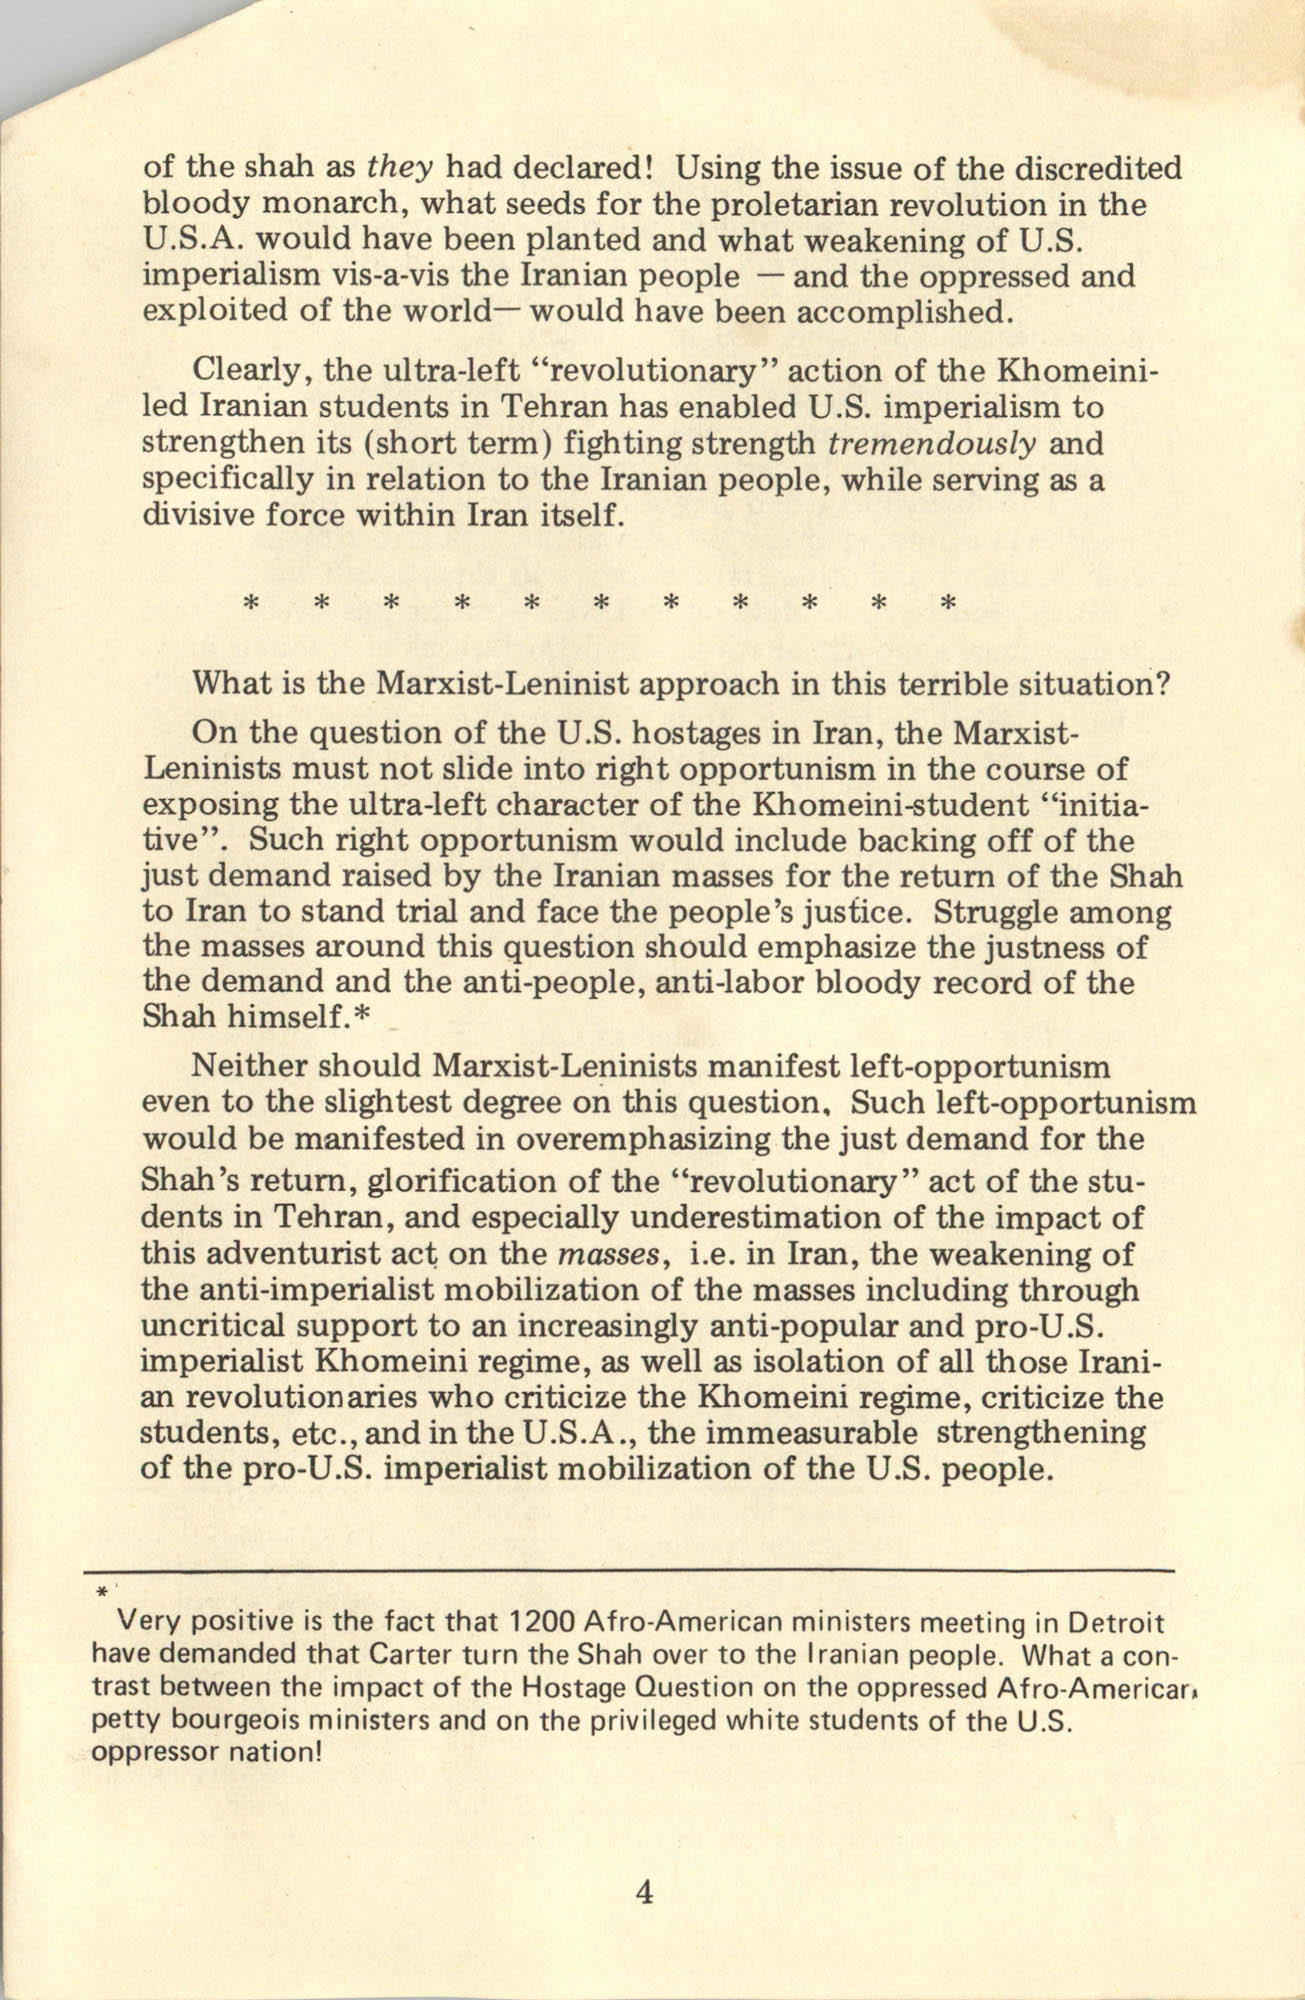 Ray O. Light Newsletter, Volume 1, Number 4, Page 4